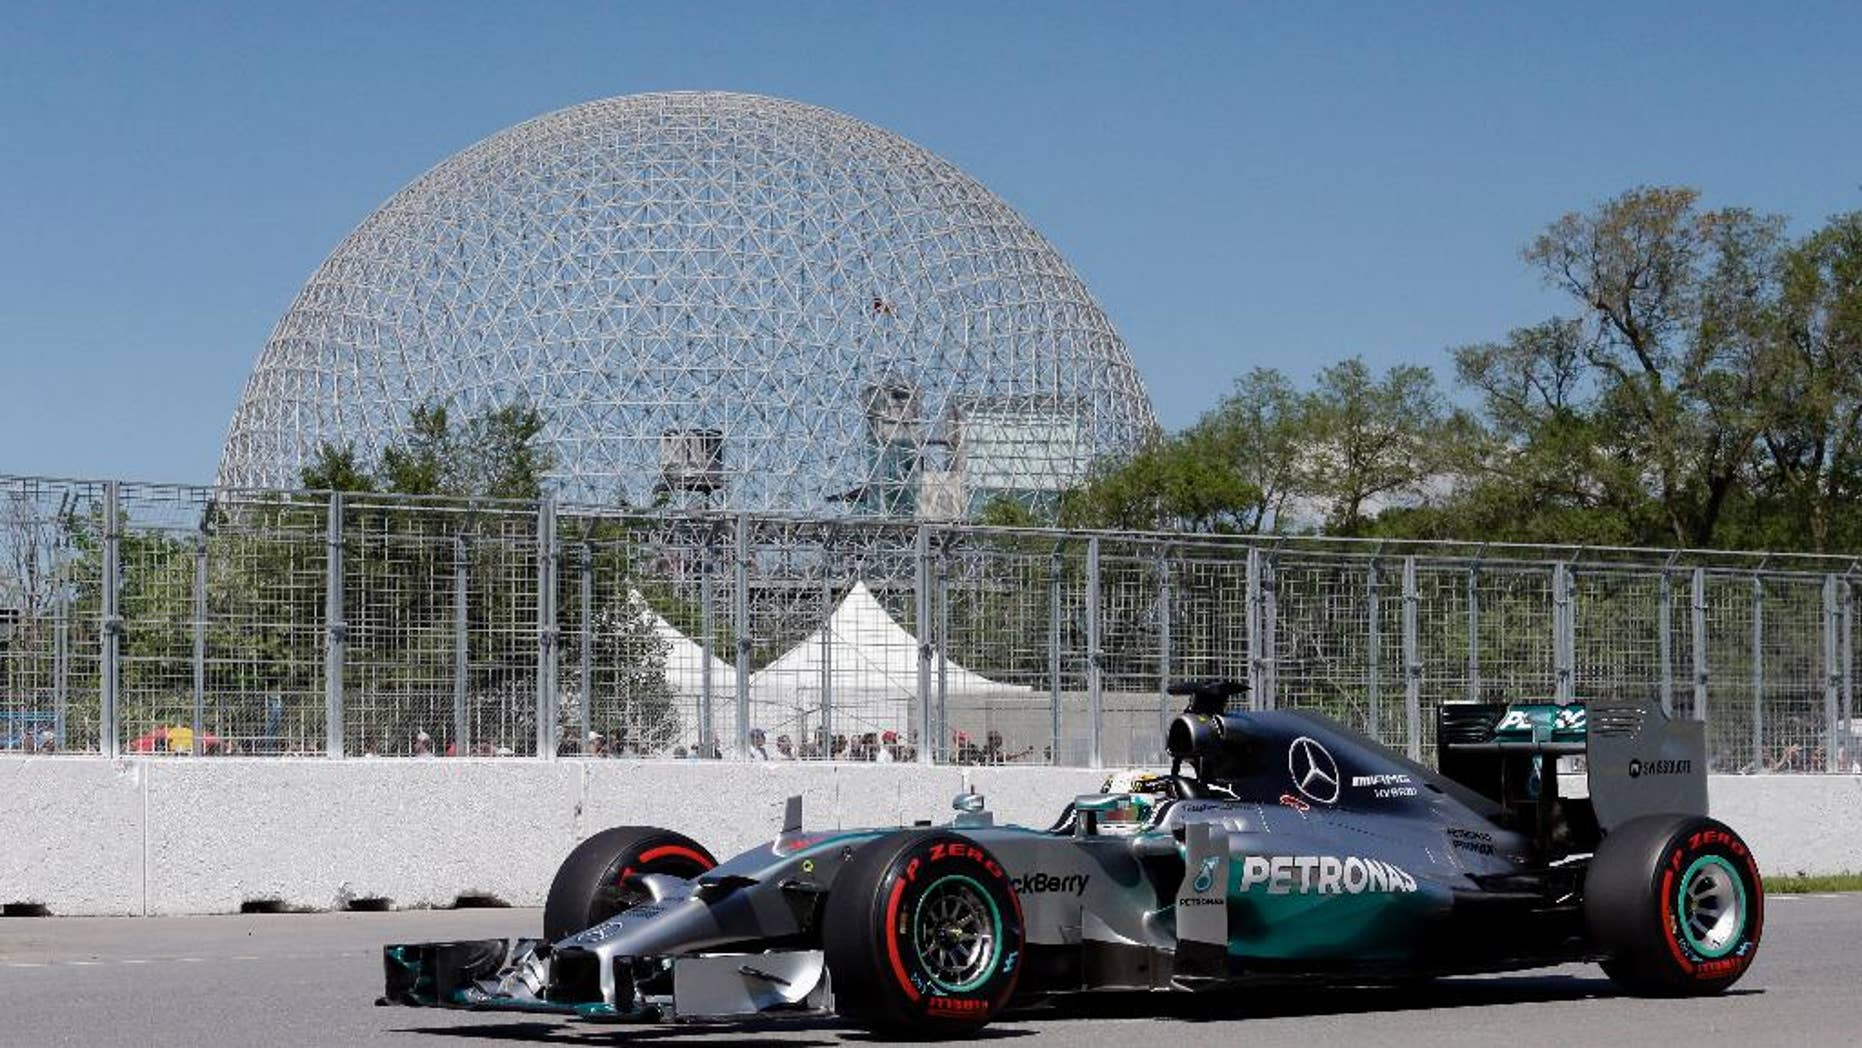 Mercedes driver Lewis Hamilton, from Great Britain, drives through the course during a practice session at the Canadian Grand Prix, Saturday, June 7, 2014, in Montreal. (AP Photo/AP Photo/David J. Phillip)